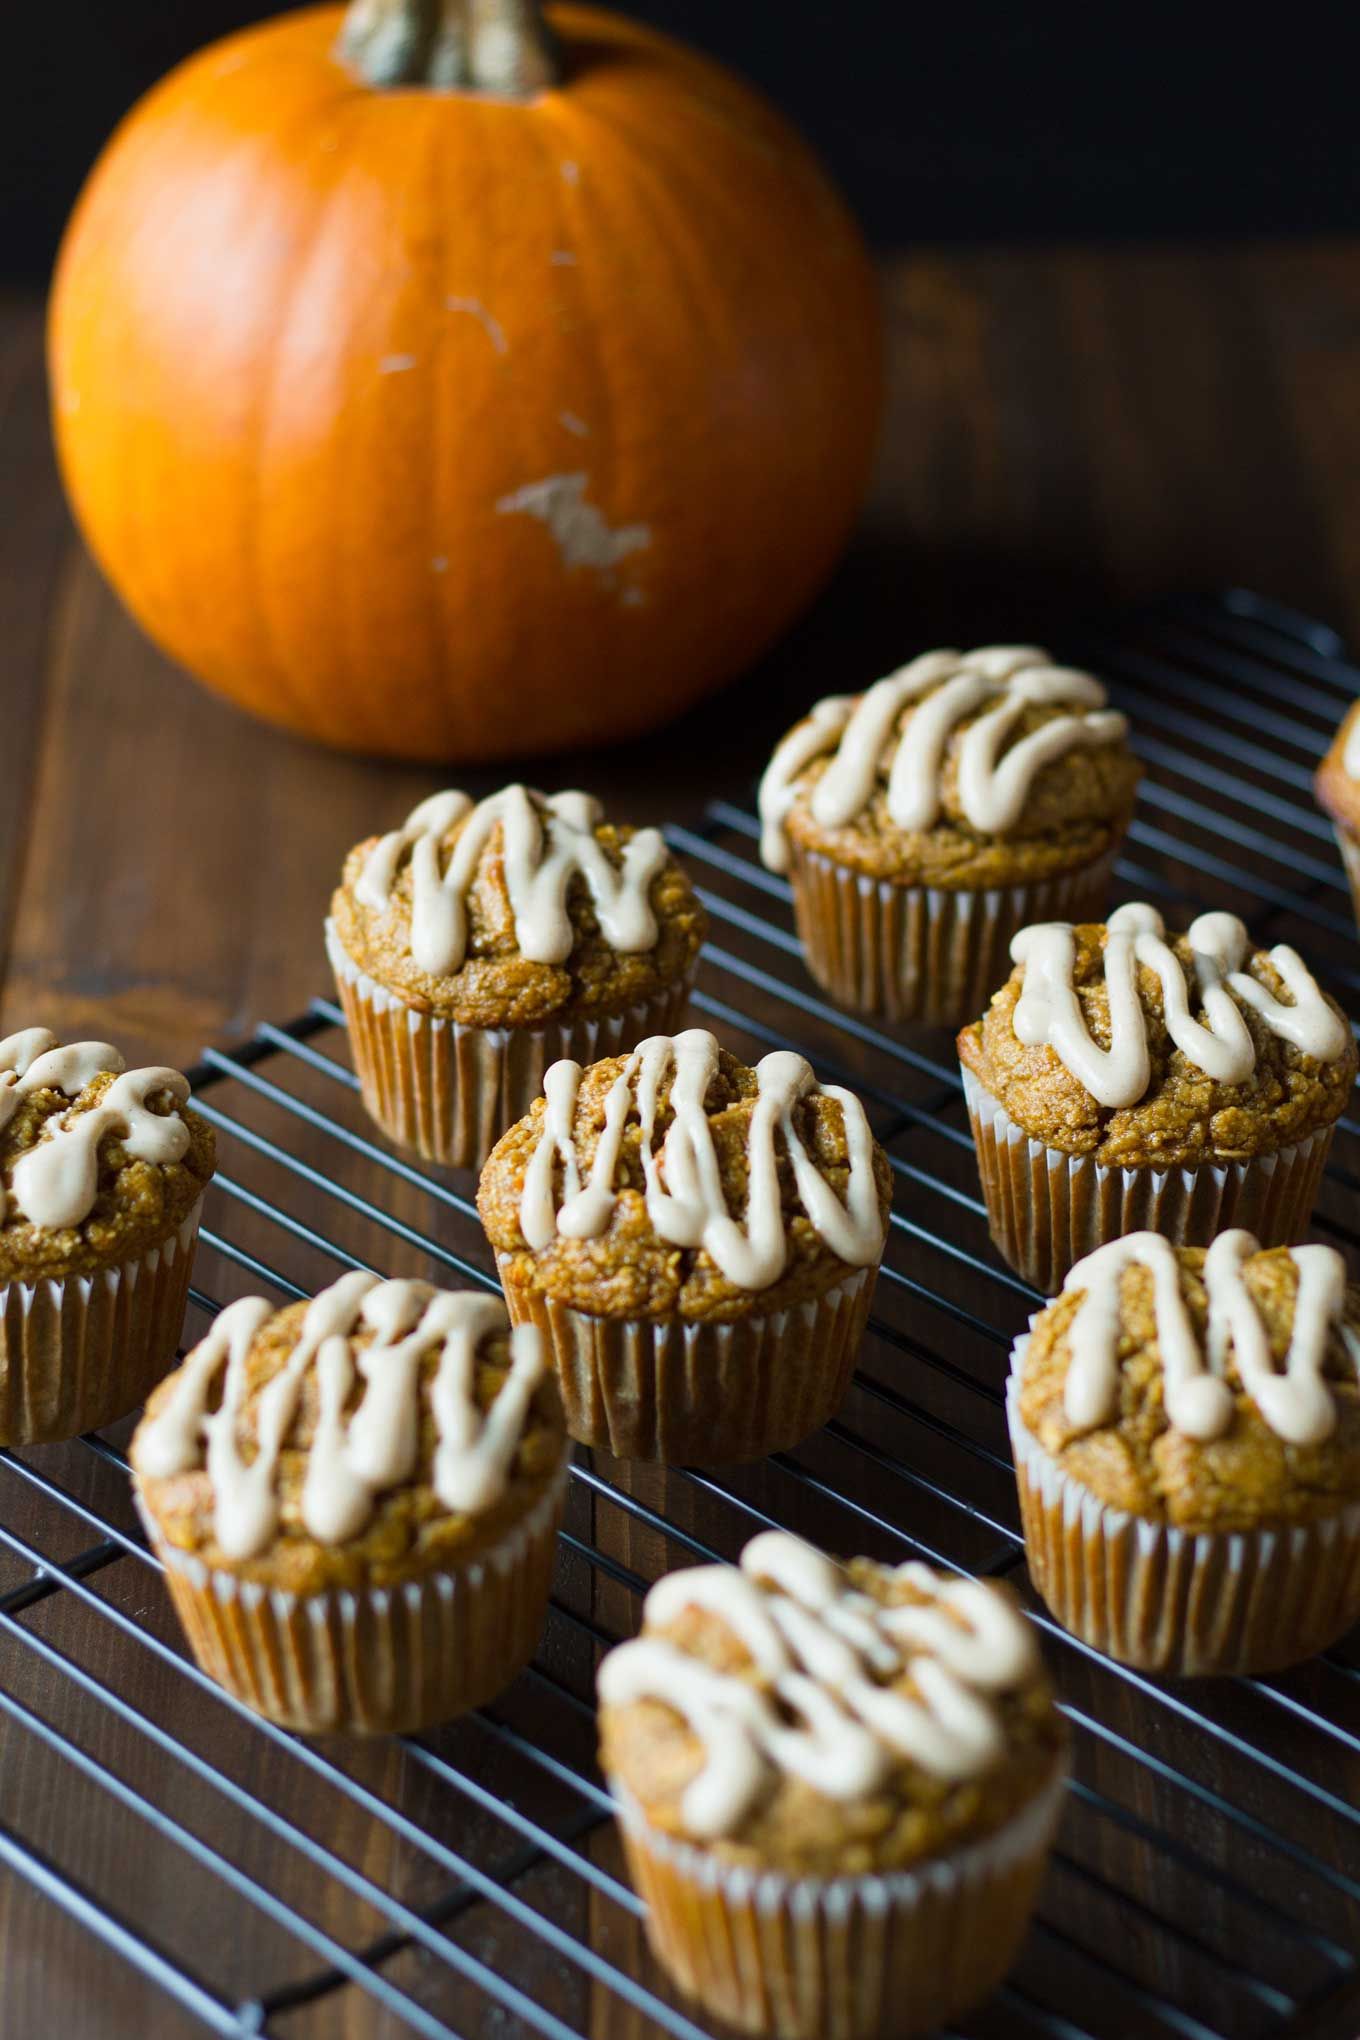 Vegan Pumpkin Blender Muffins | Vegan Pumpkin Blender Muffins are a healthy treat for fall! Gluten-free, oil-free, yet moist and delicious! | https://passtheplants.com